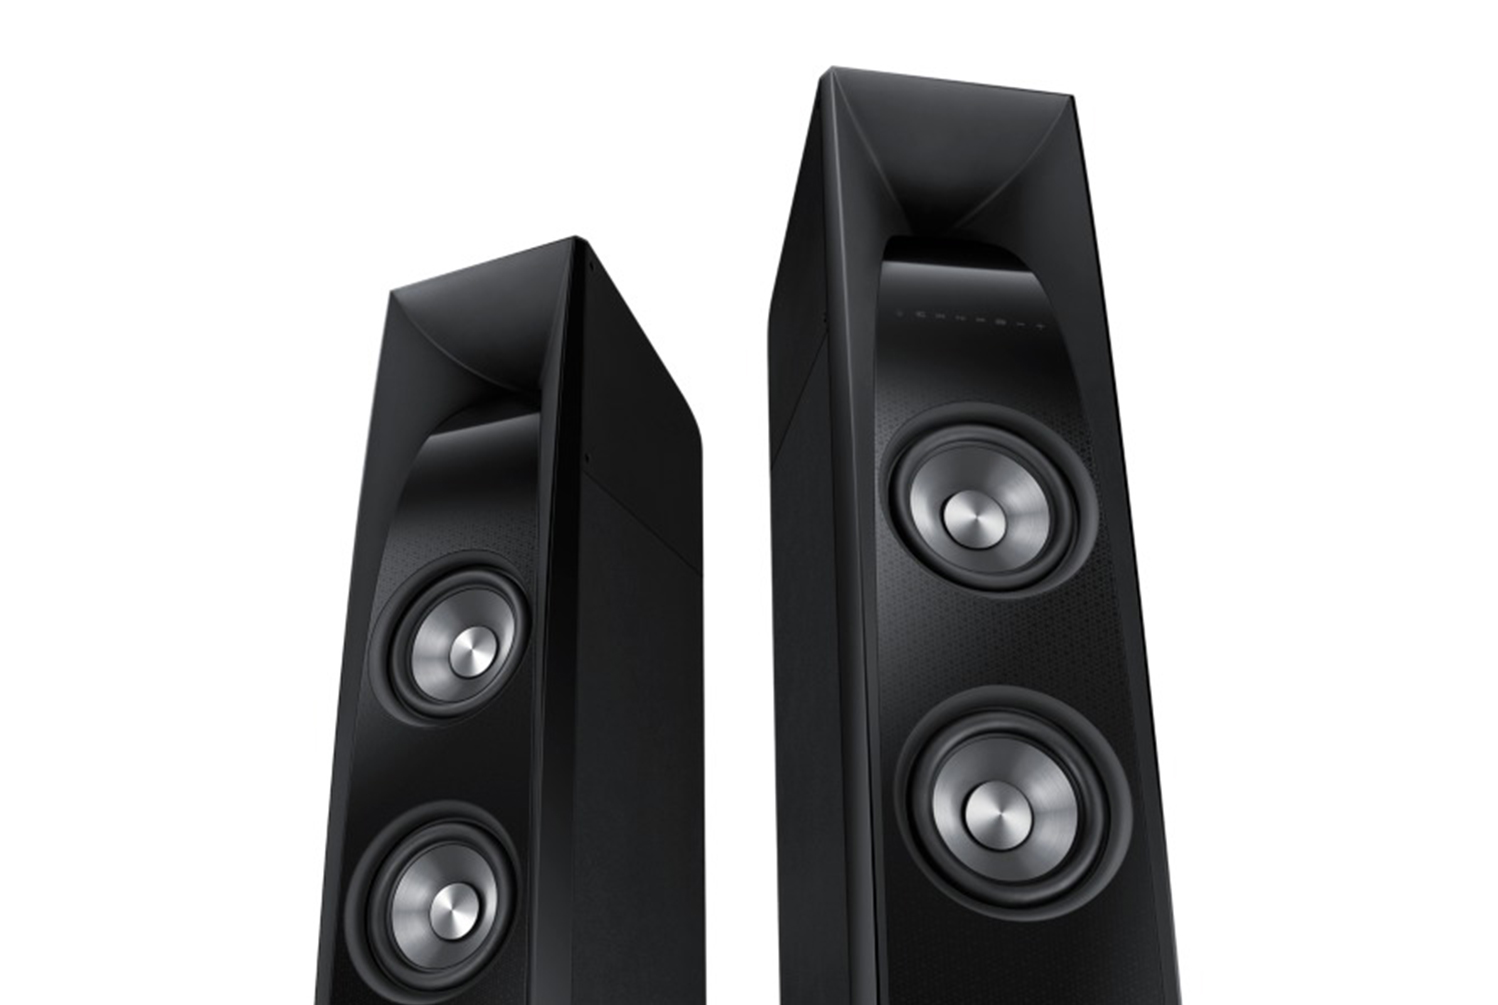 samsung-tw-h5500-sound-tower_hgwwfAx